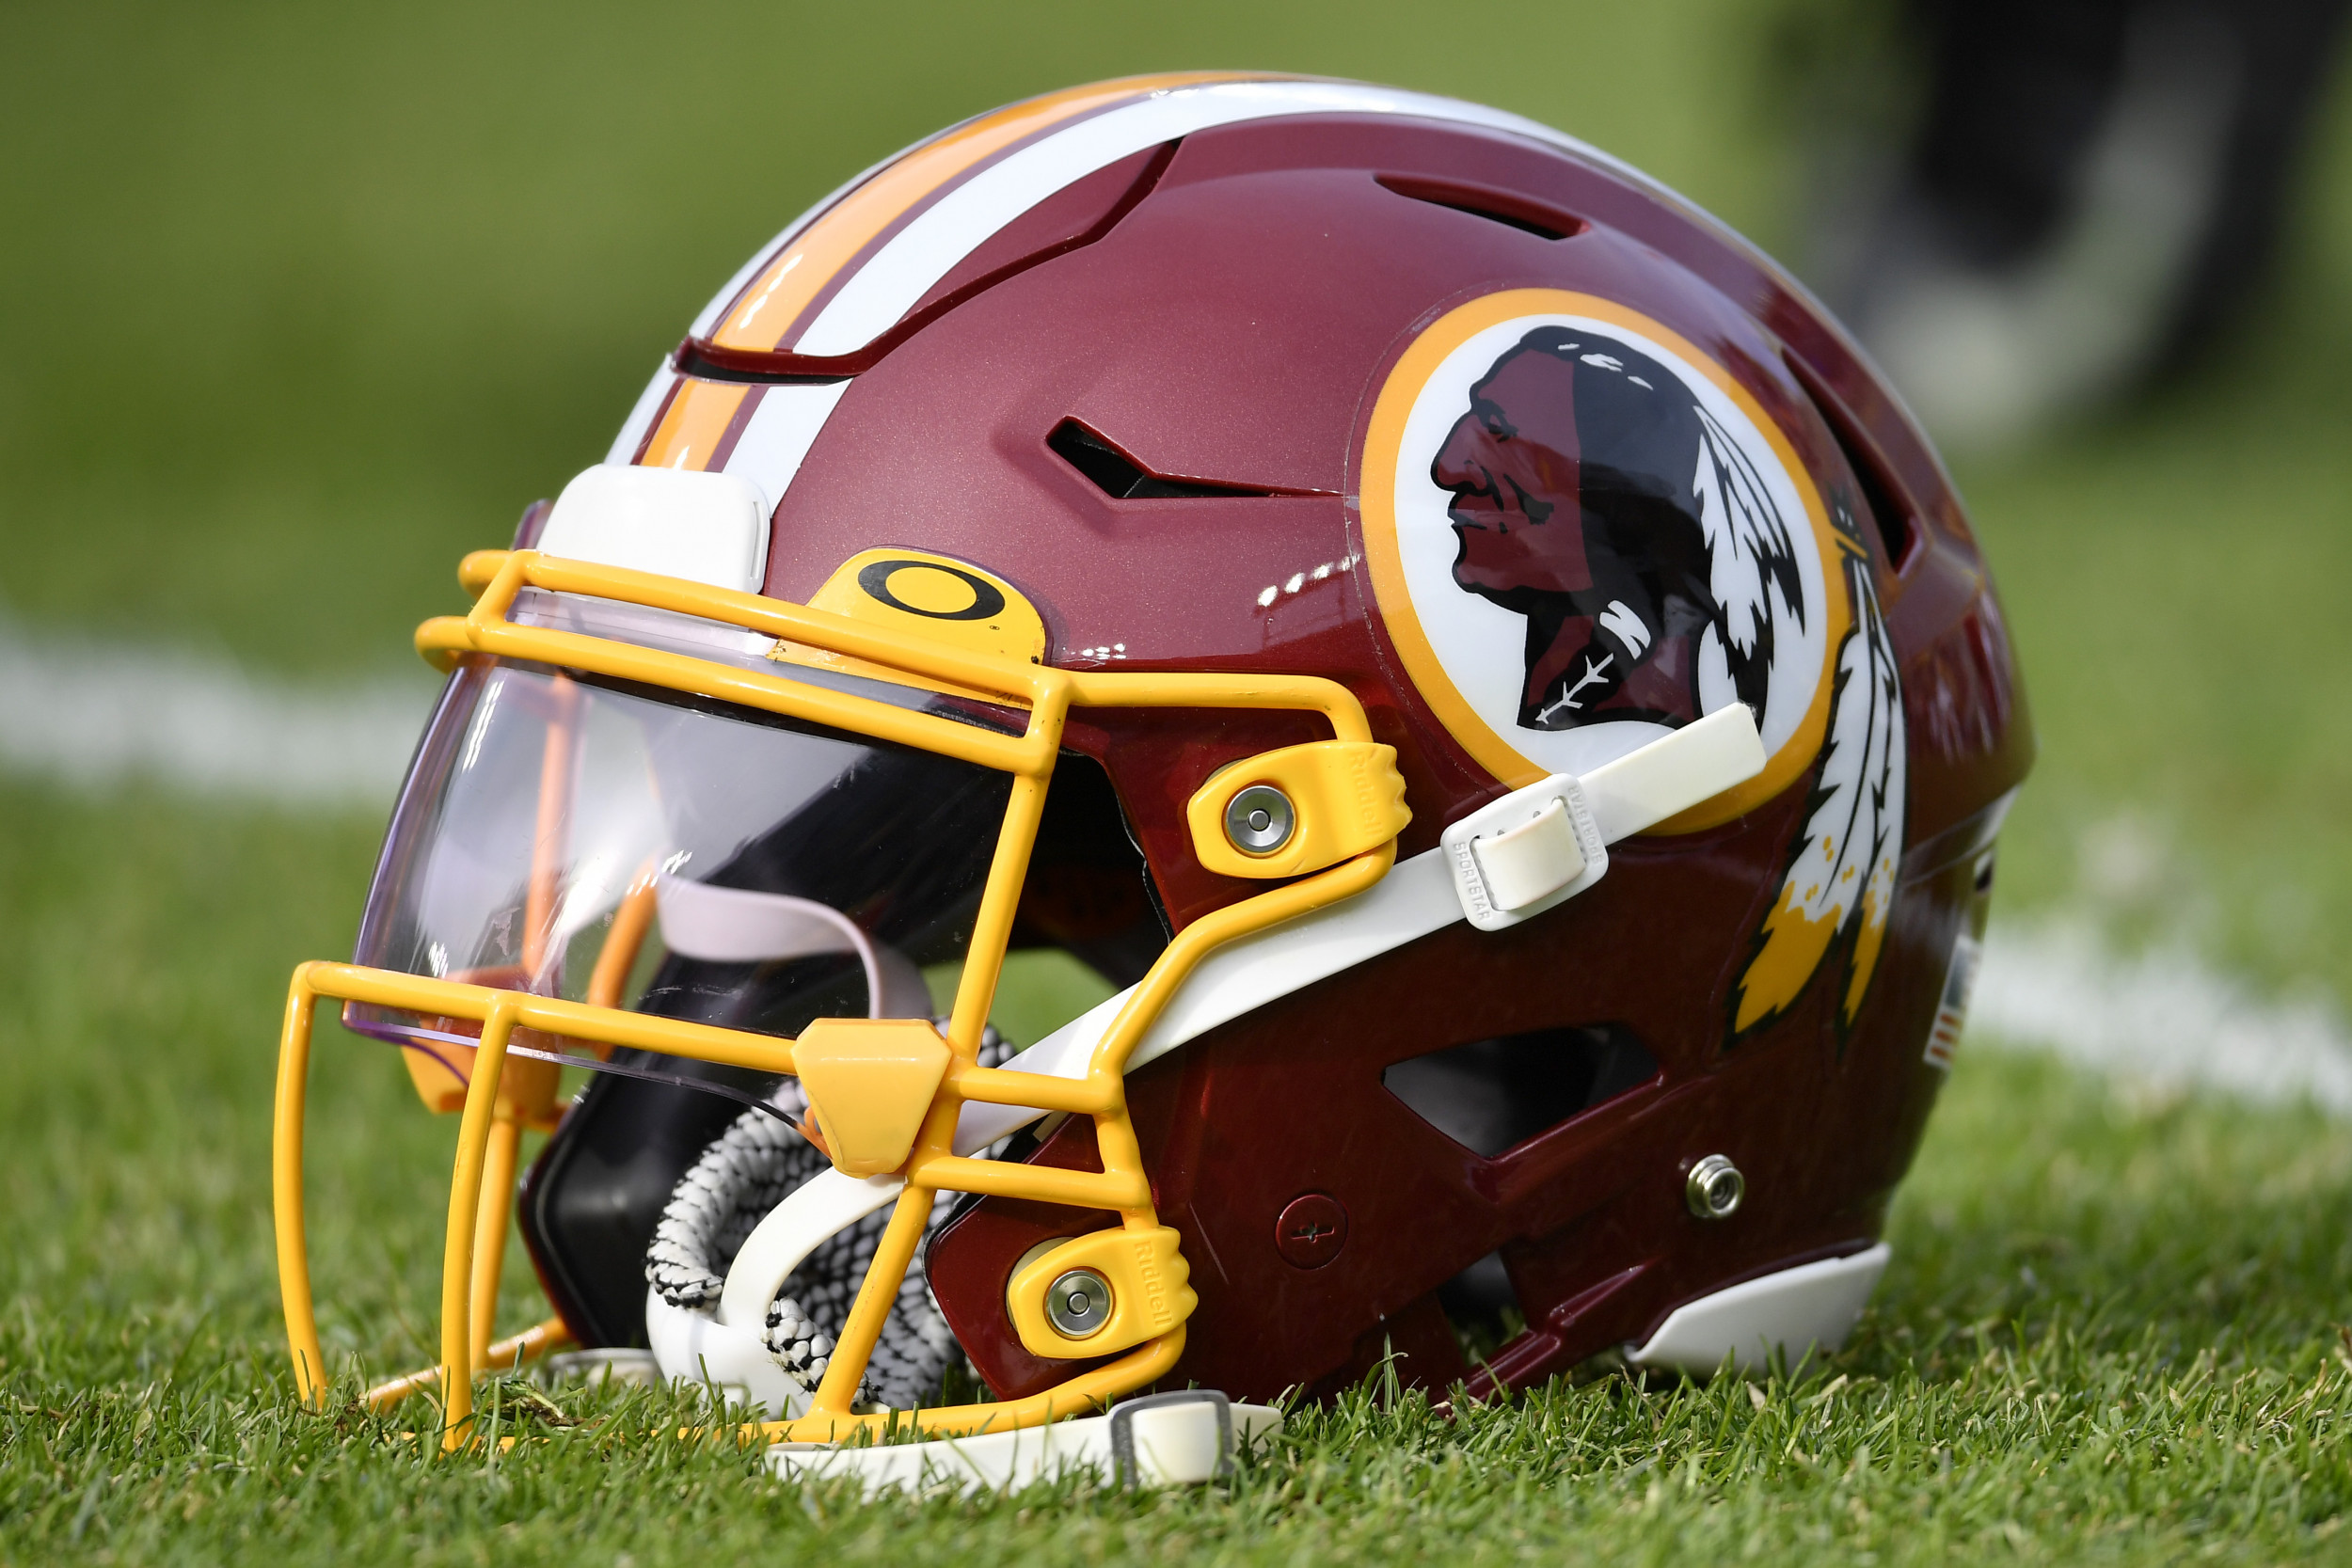 REDSKINS ARE WASH. FOOTBALL TEAM